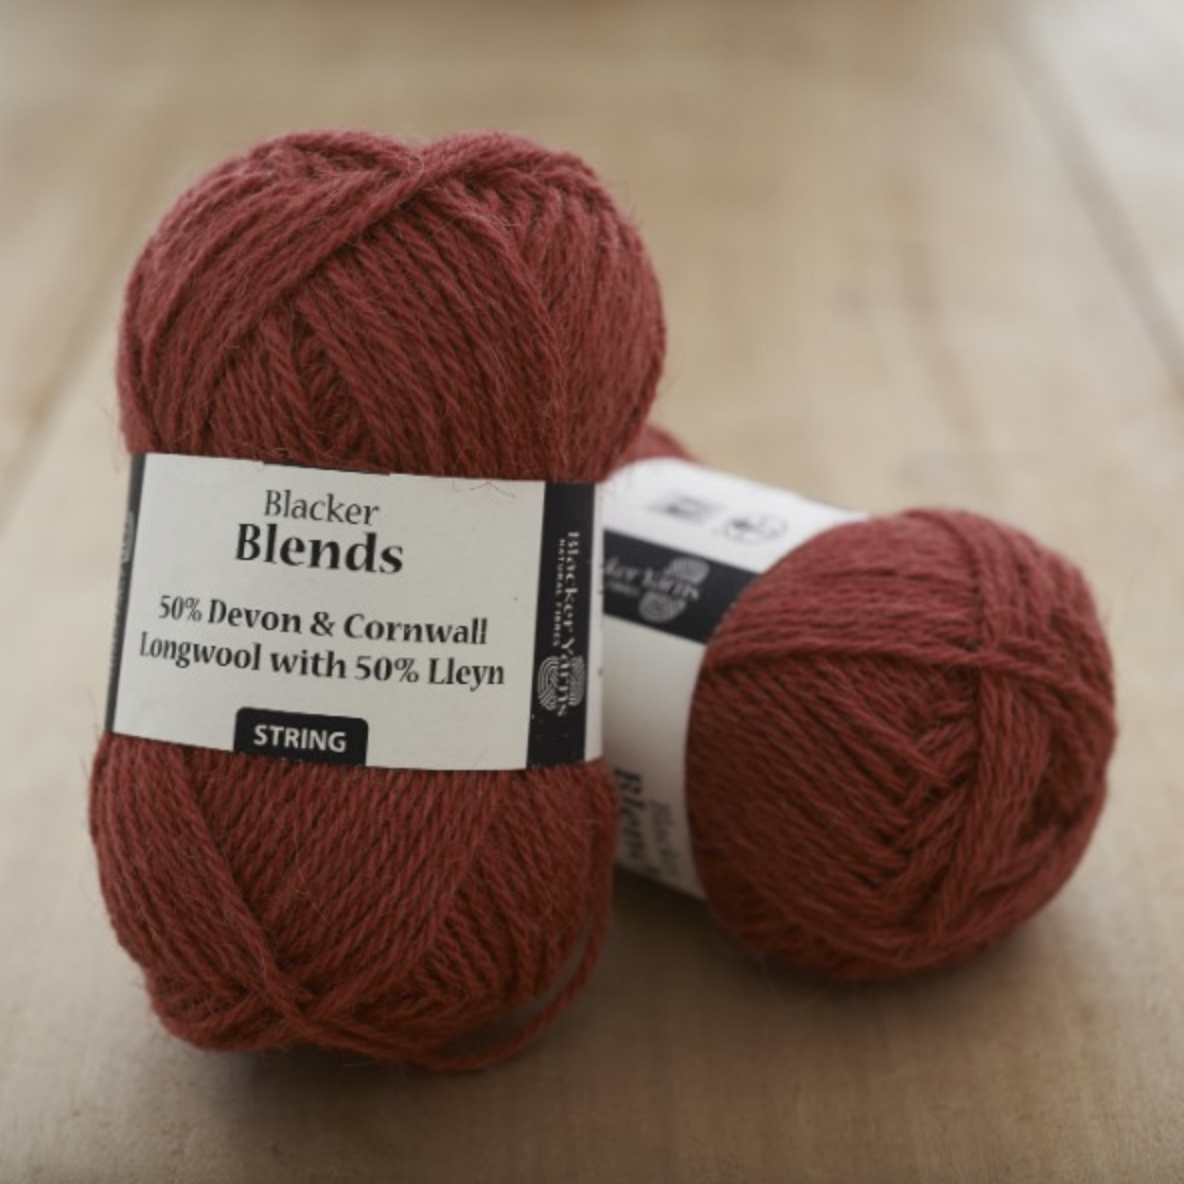 Organic British wool is a good choice of fibre on eco grounds